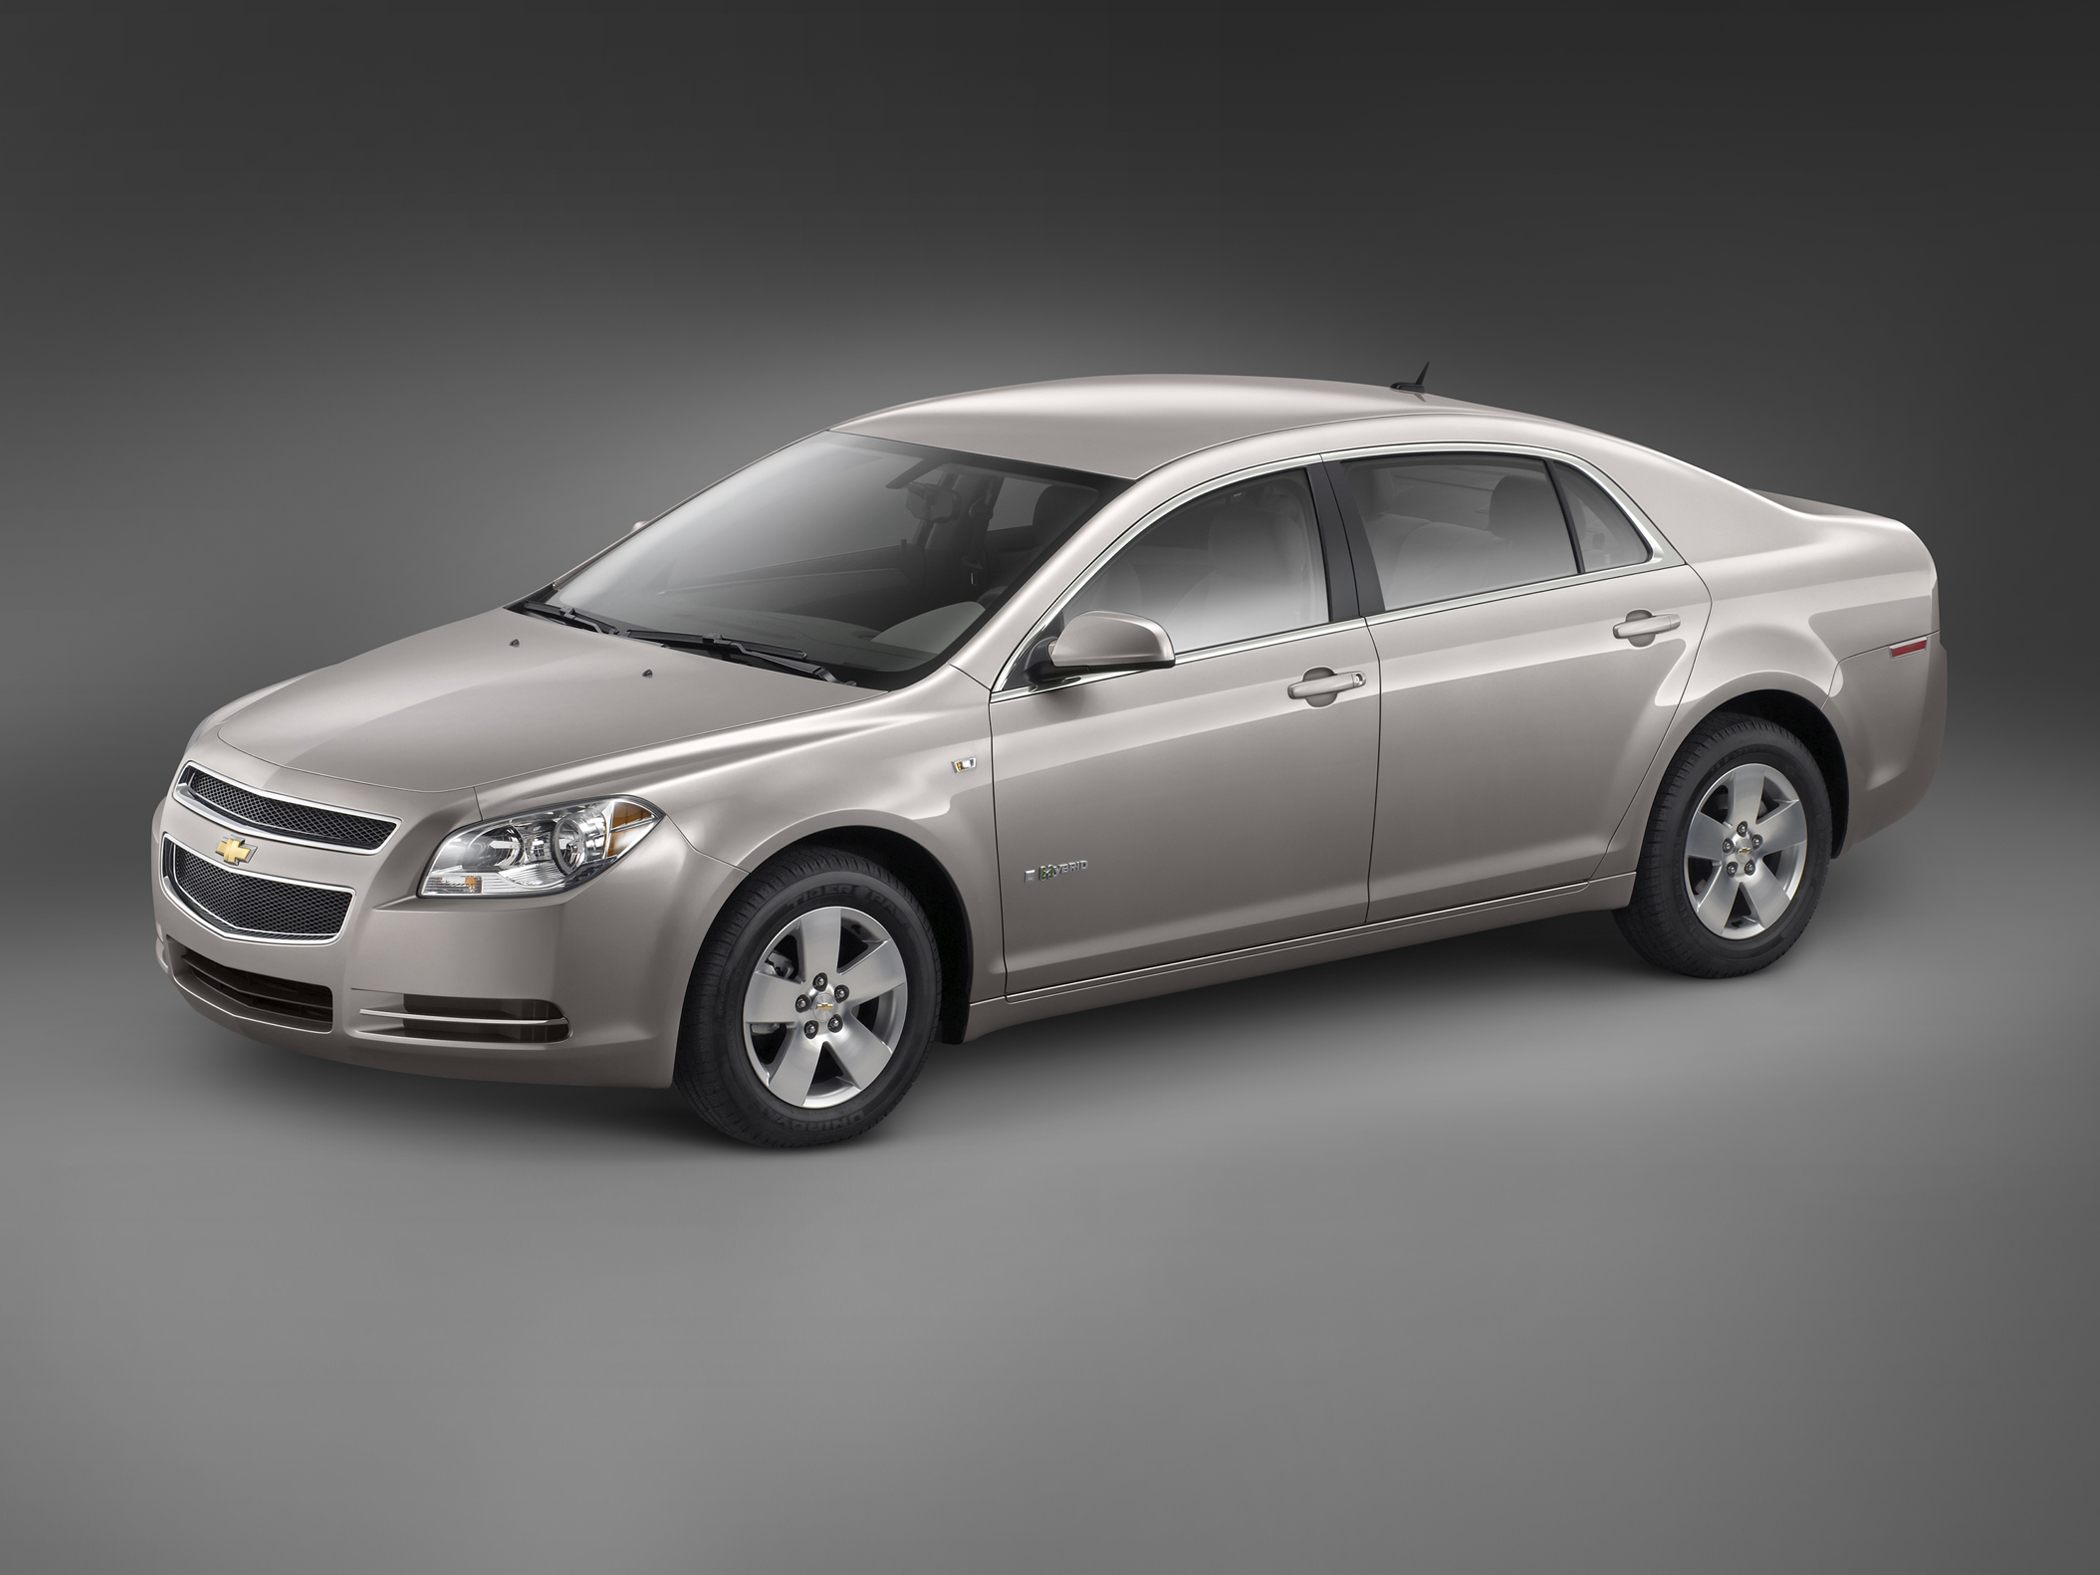 2010 chevrolet malibu hybrid photos informations articles. Black Bedroom Furniture Sets. Home Design Ideas